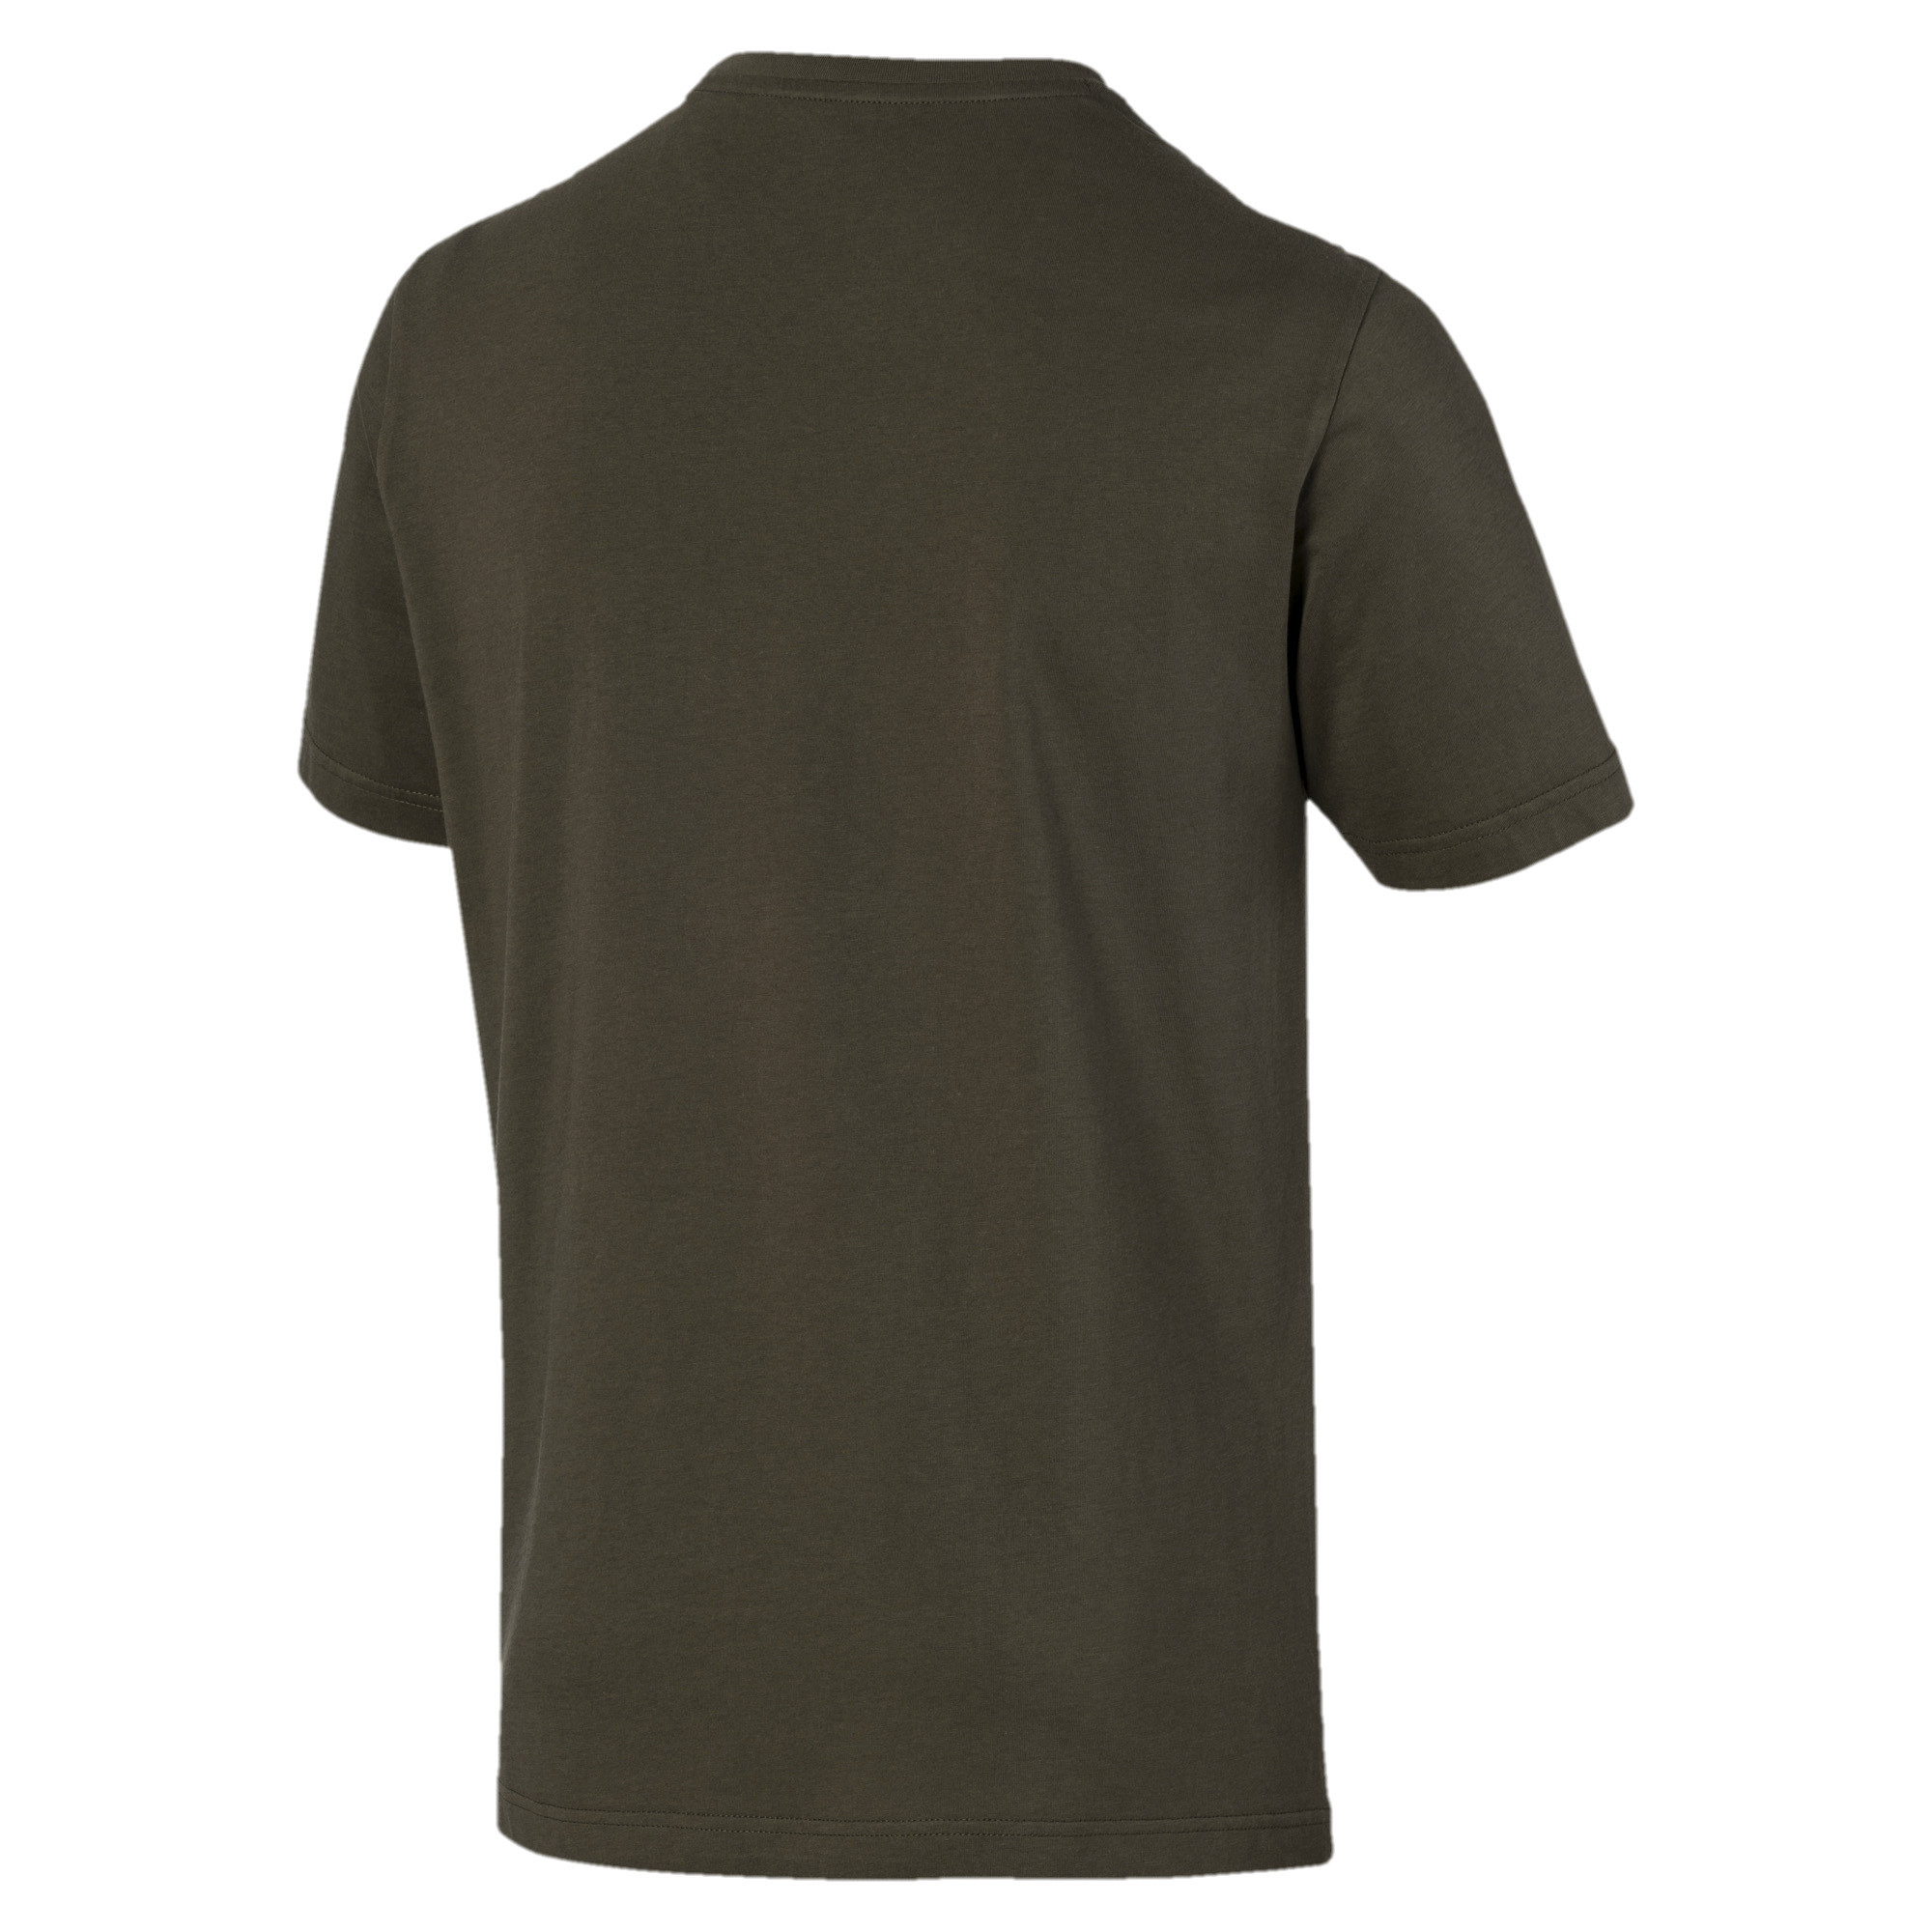 PUMA-Rebel-Camo-Filled-Men-039-s-Tee-Men-Tee-Basics thumbnail 8